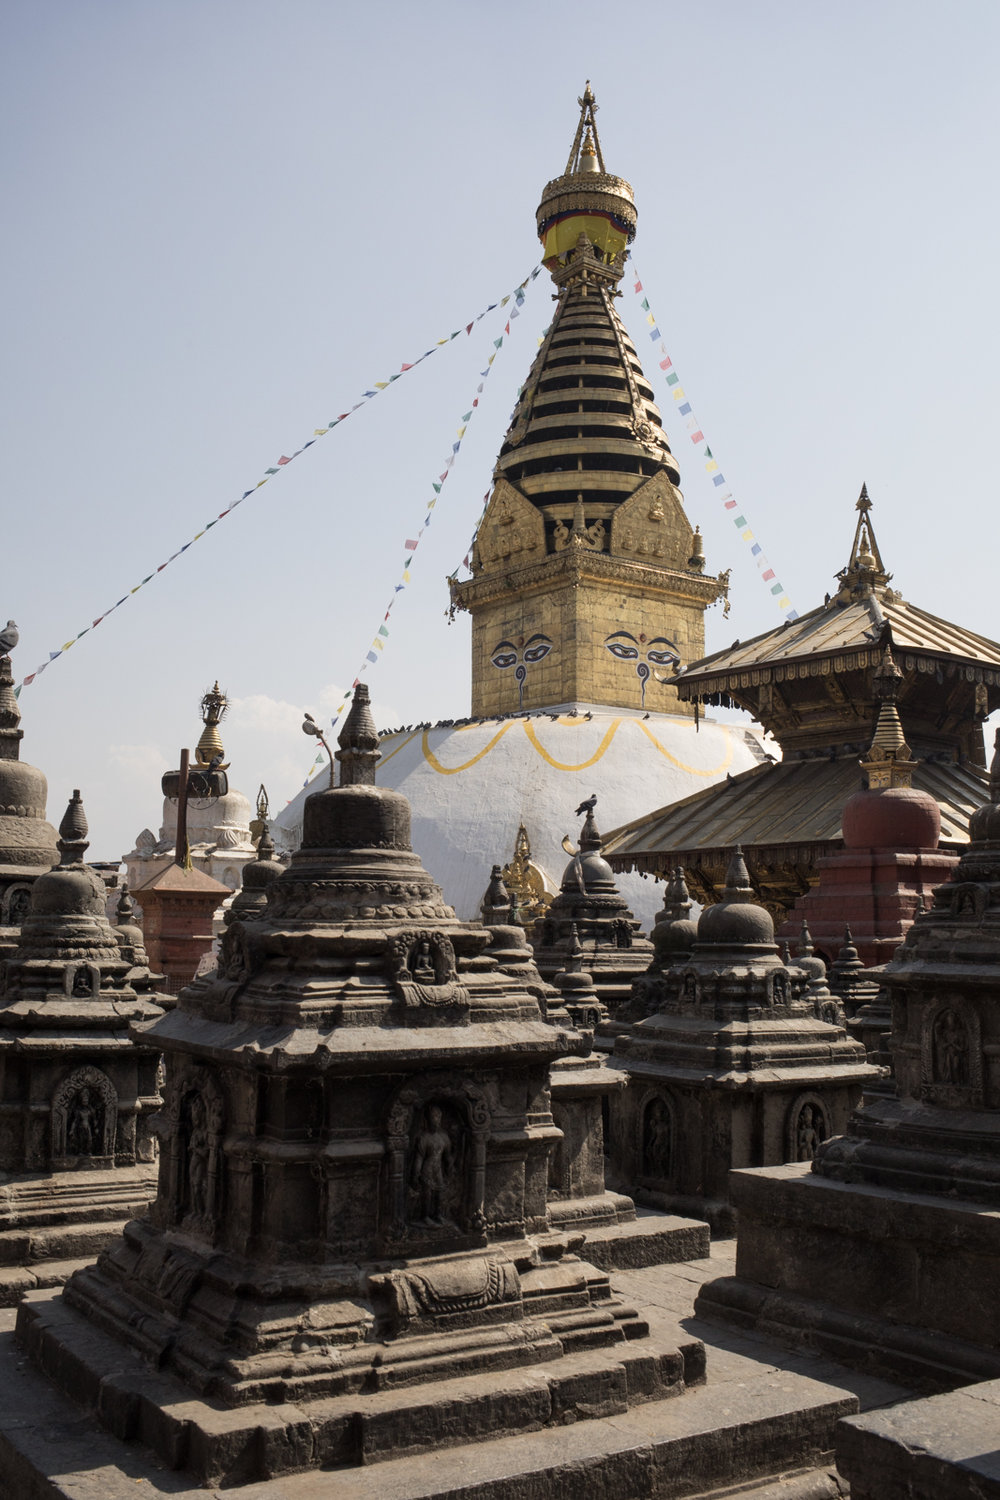 Small stupas surround Swayambhunath.